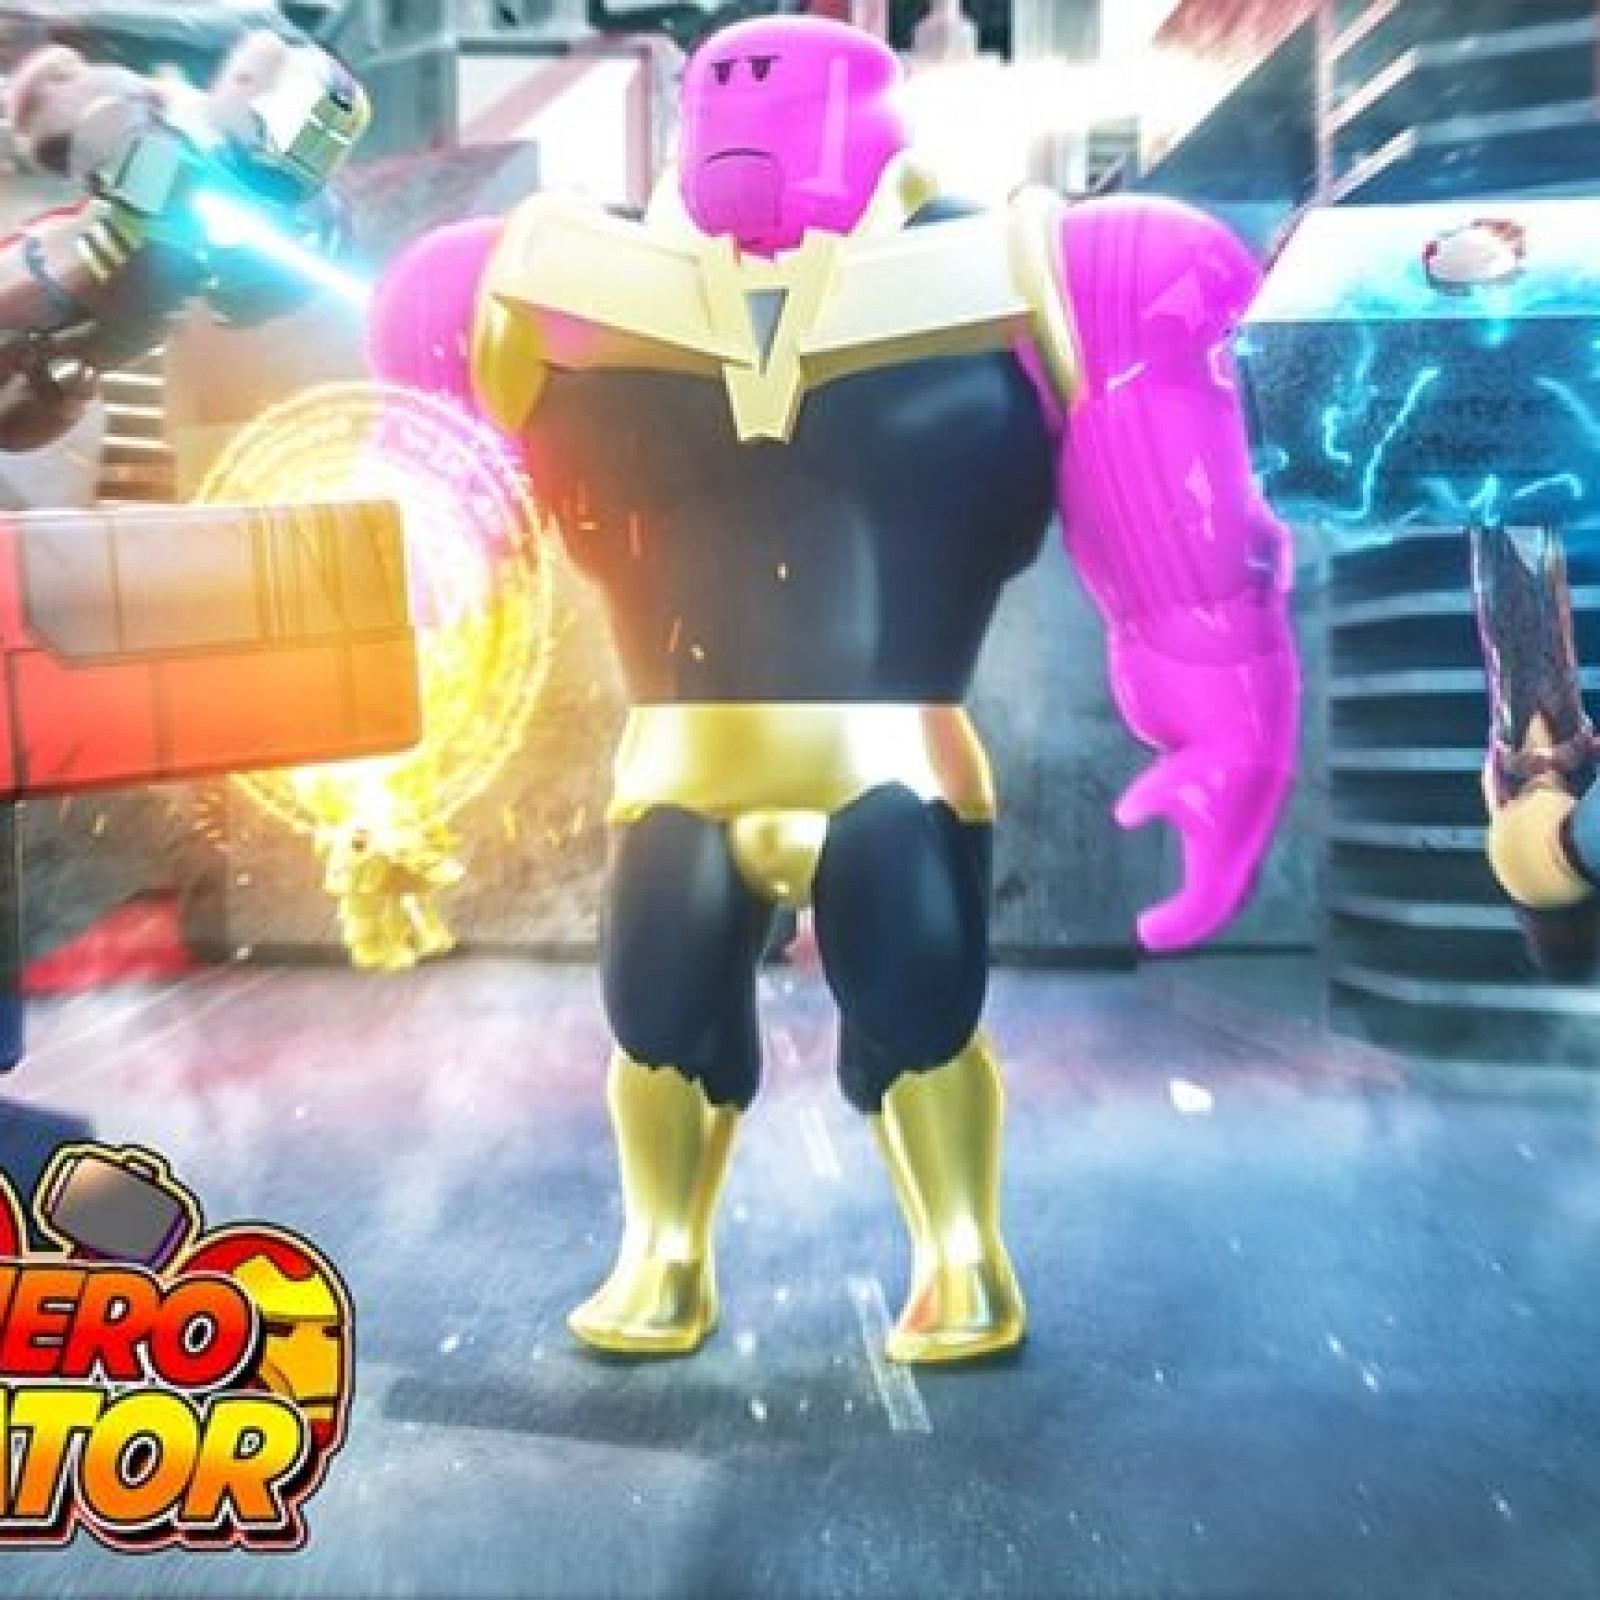 Superhero Simulator' Codes: All Working Roblox Codes to Get Free Coins